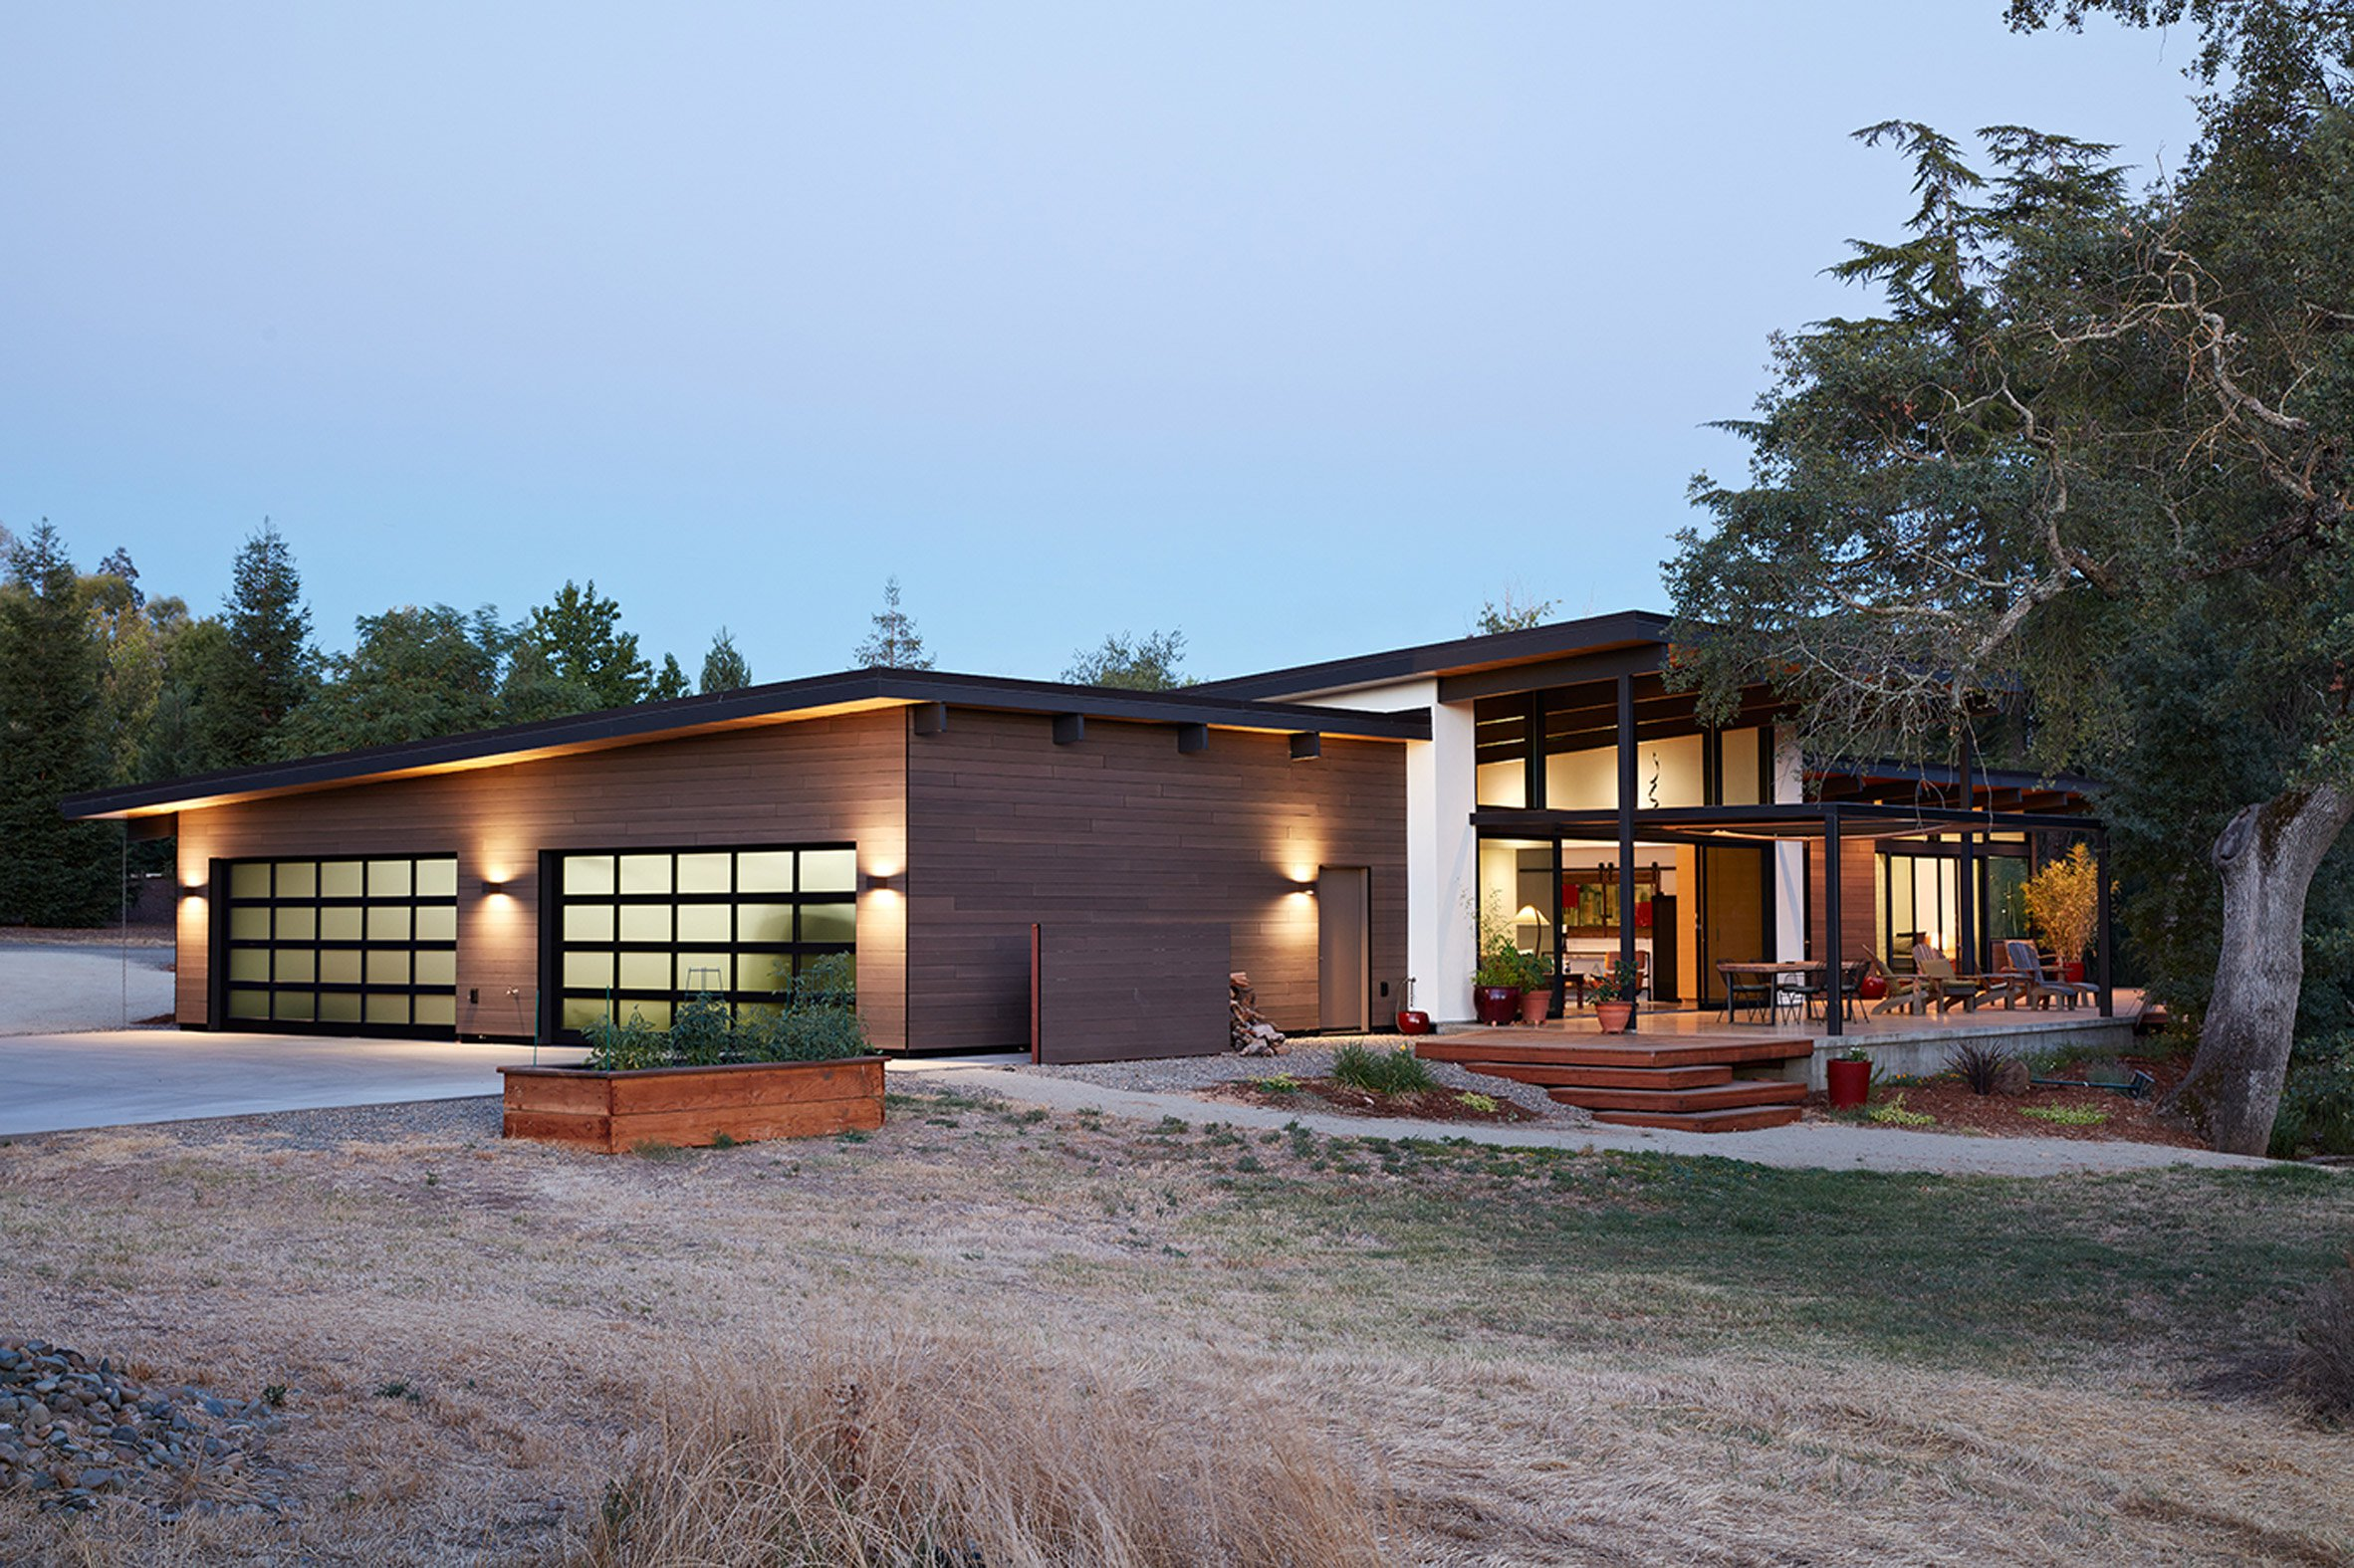 Sacramento new residence by klopf architecture in - Residence calistoga strening architects californie ...